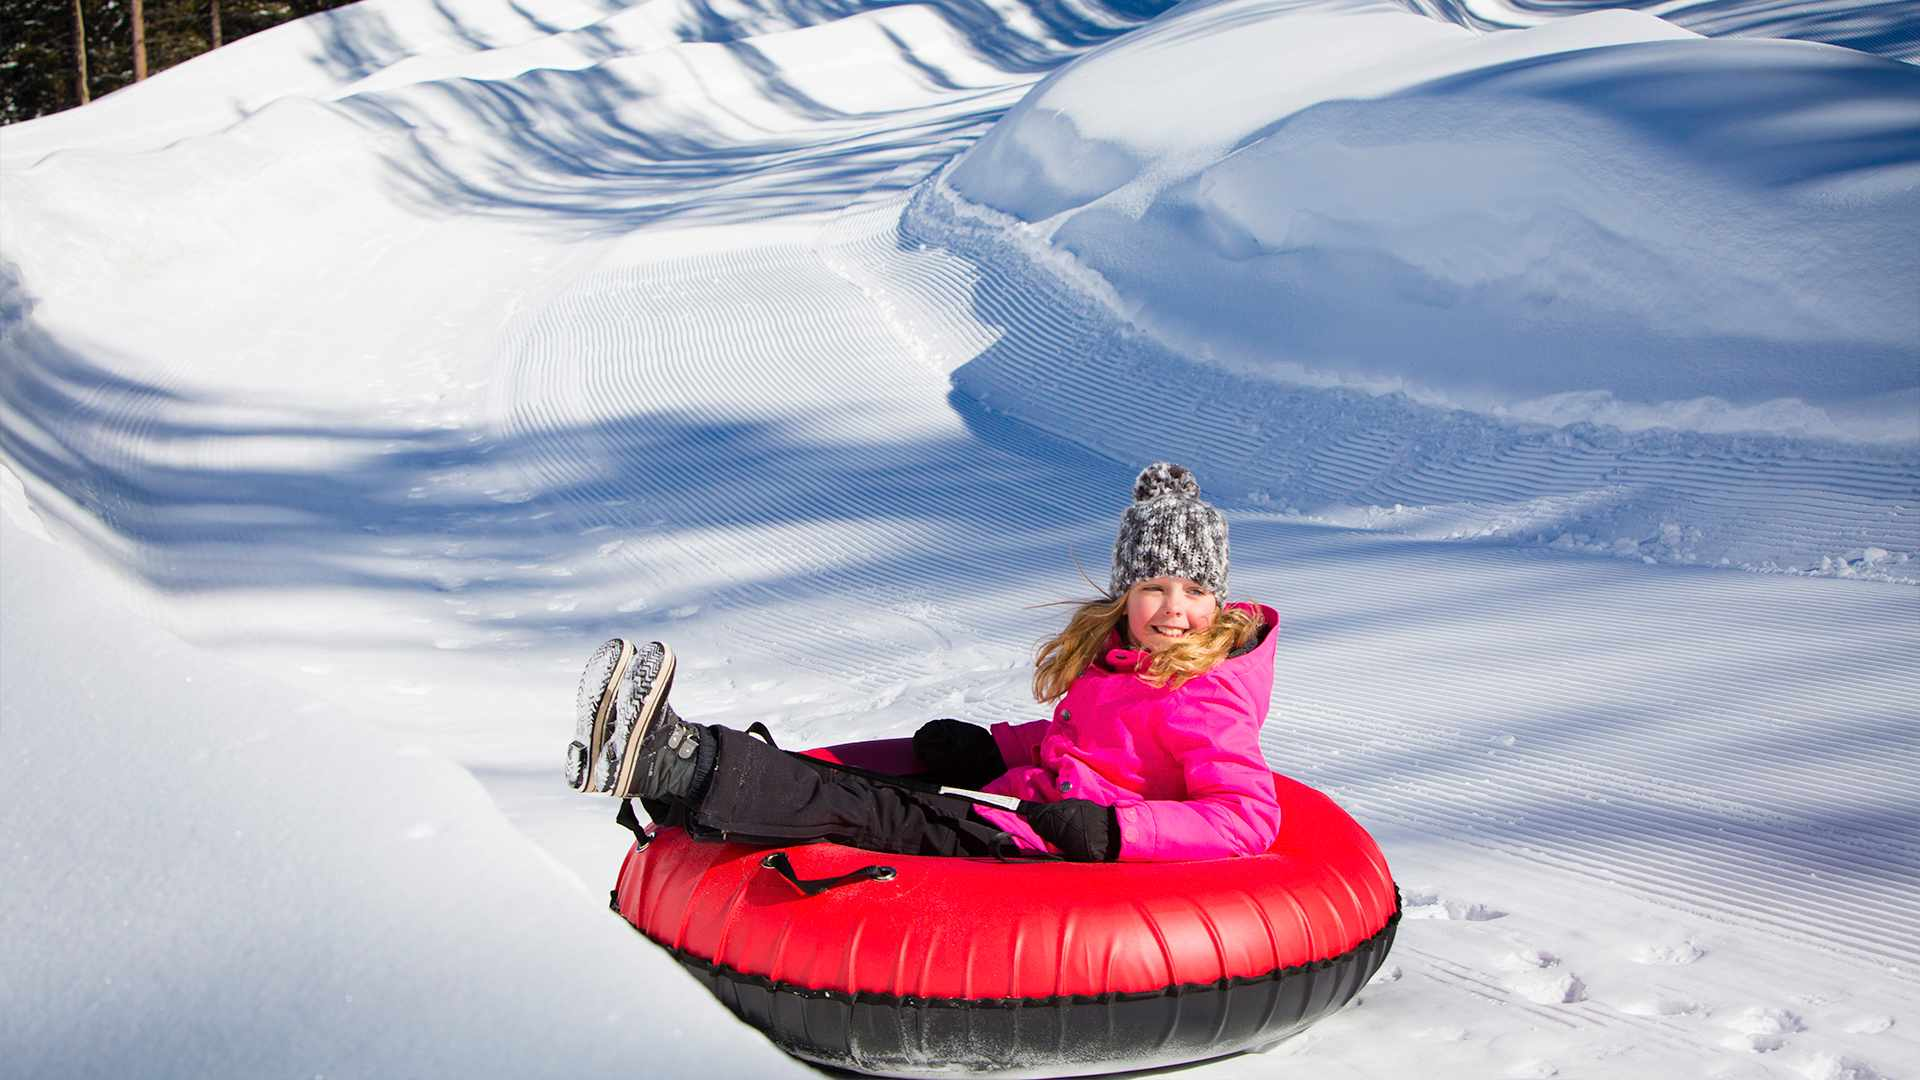 Snow Tubing - Trade in your skis or board for a tube and hit the snow tubing hill located at the top of the Elk Camp Gondola.